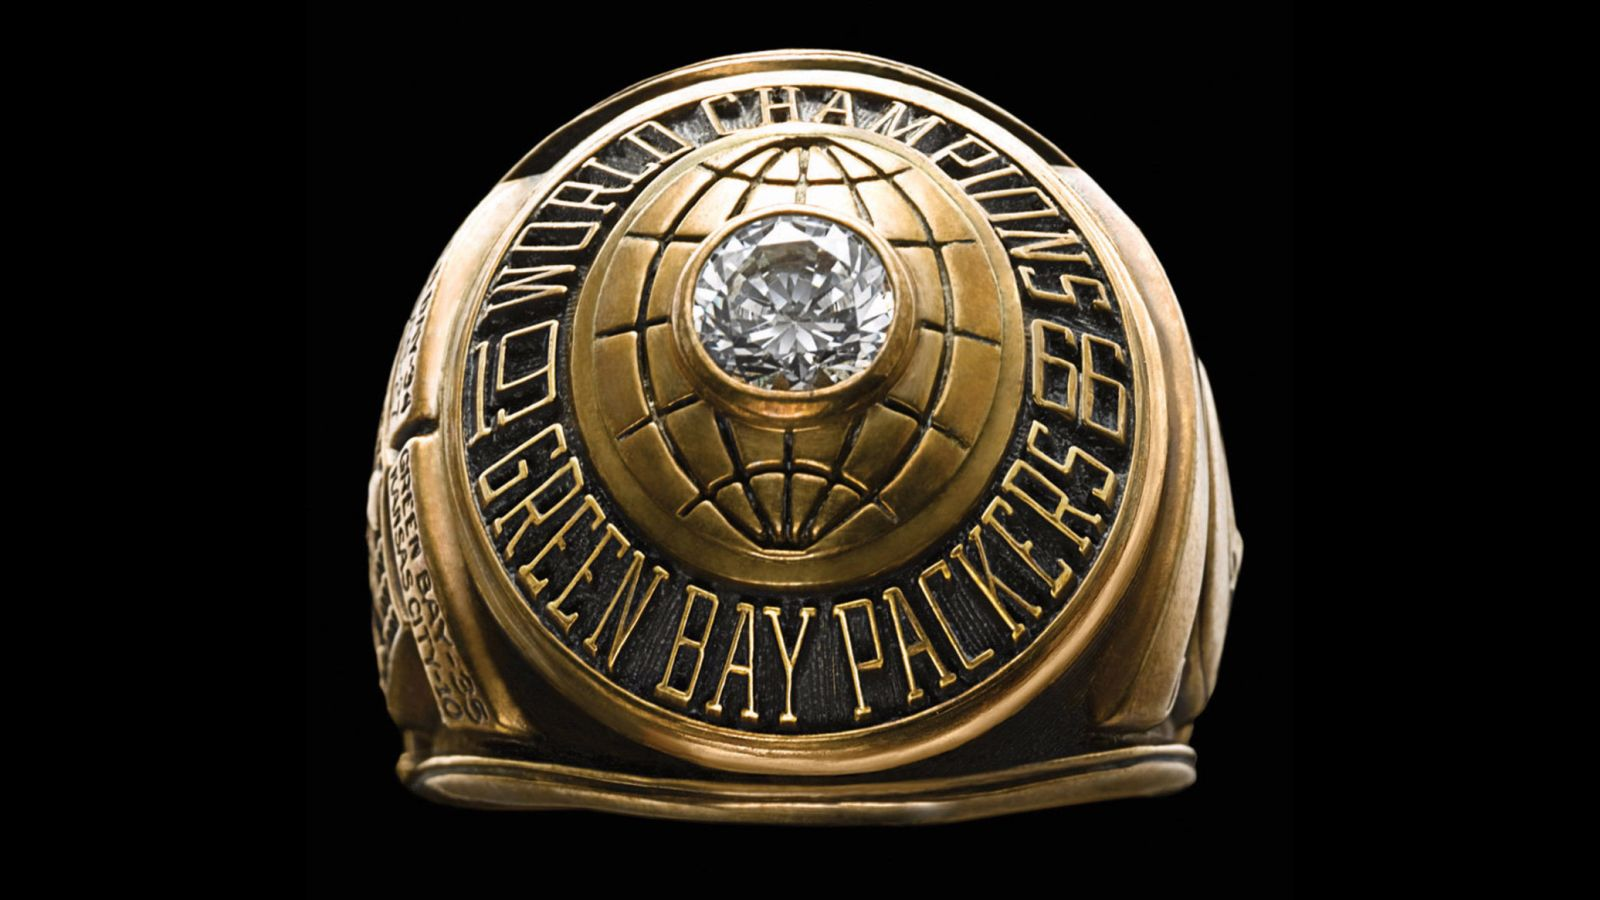 1966 Green Bay Packers Super Bowl Championship Ring